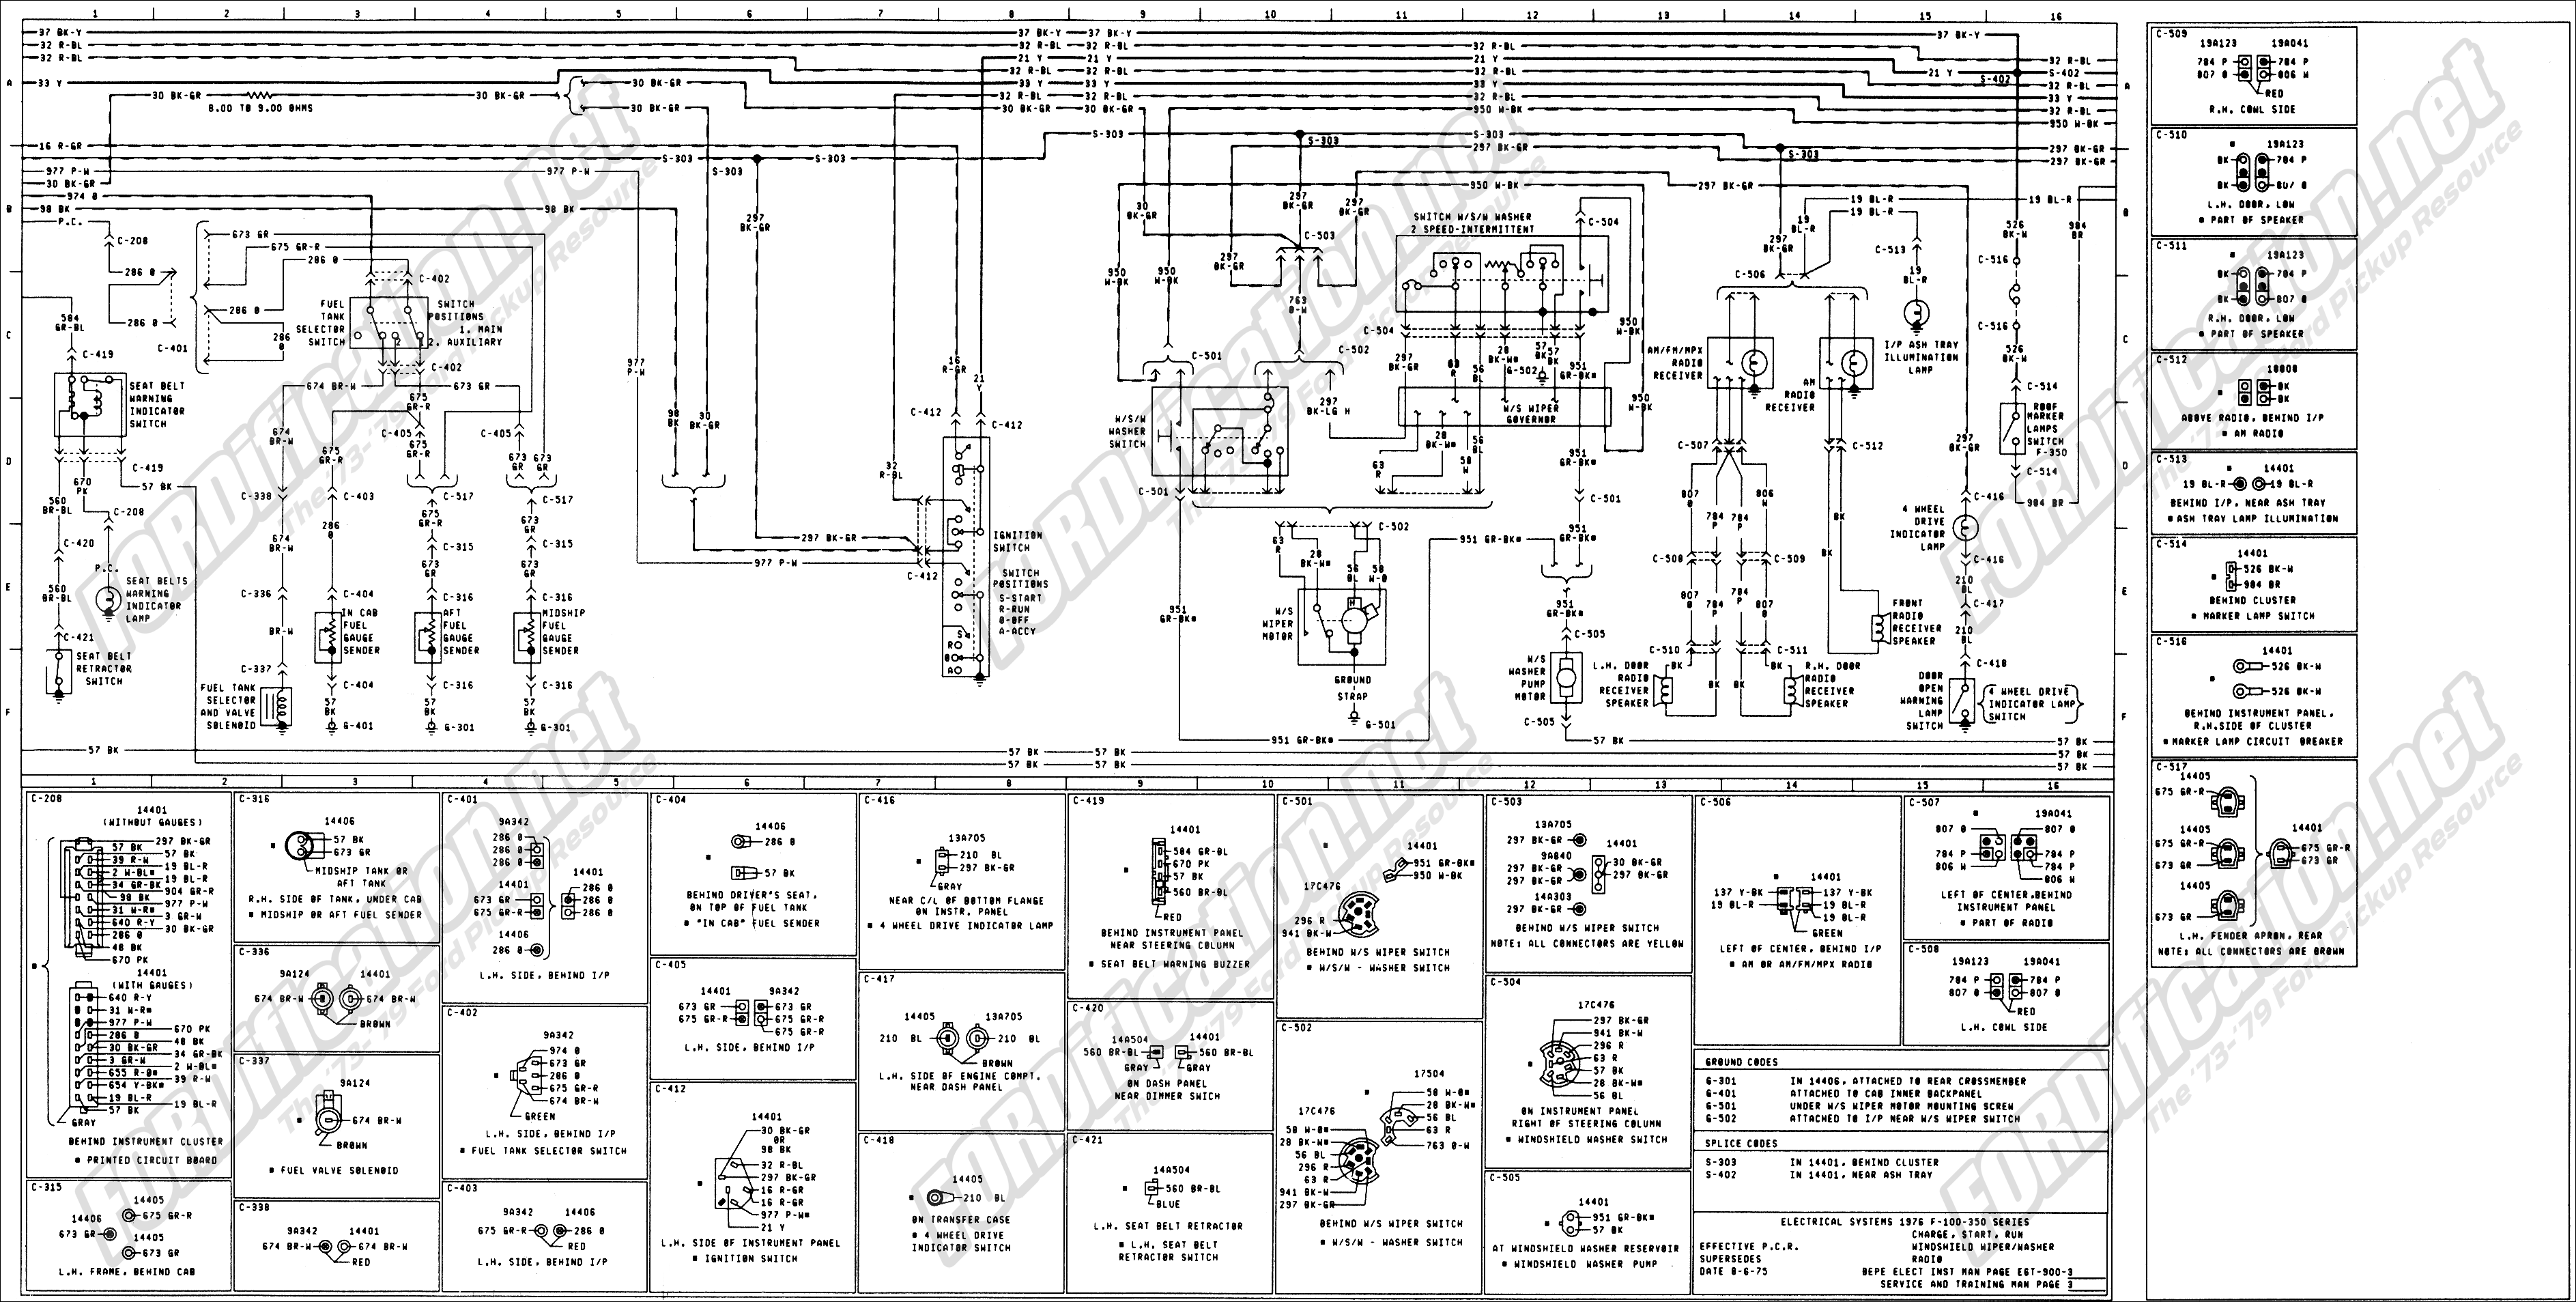 wiring_76master_3of9 1973 ford f250 wiring diagram ford f 150 starter wiring diagram wiring diagram for 2002 f250 starter at honlapkeszites.co